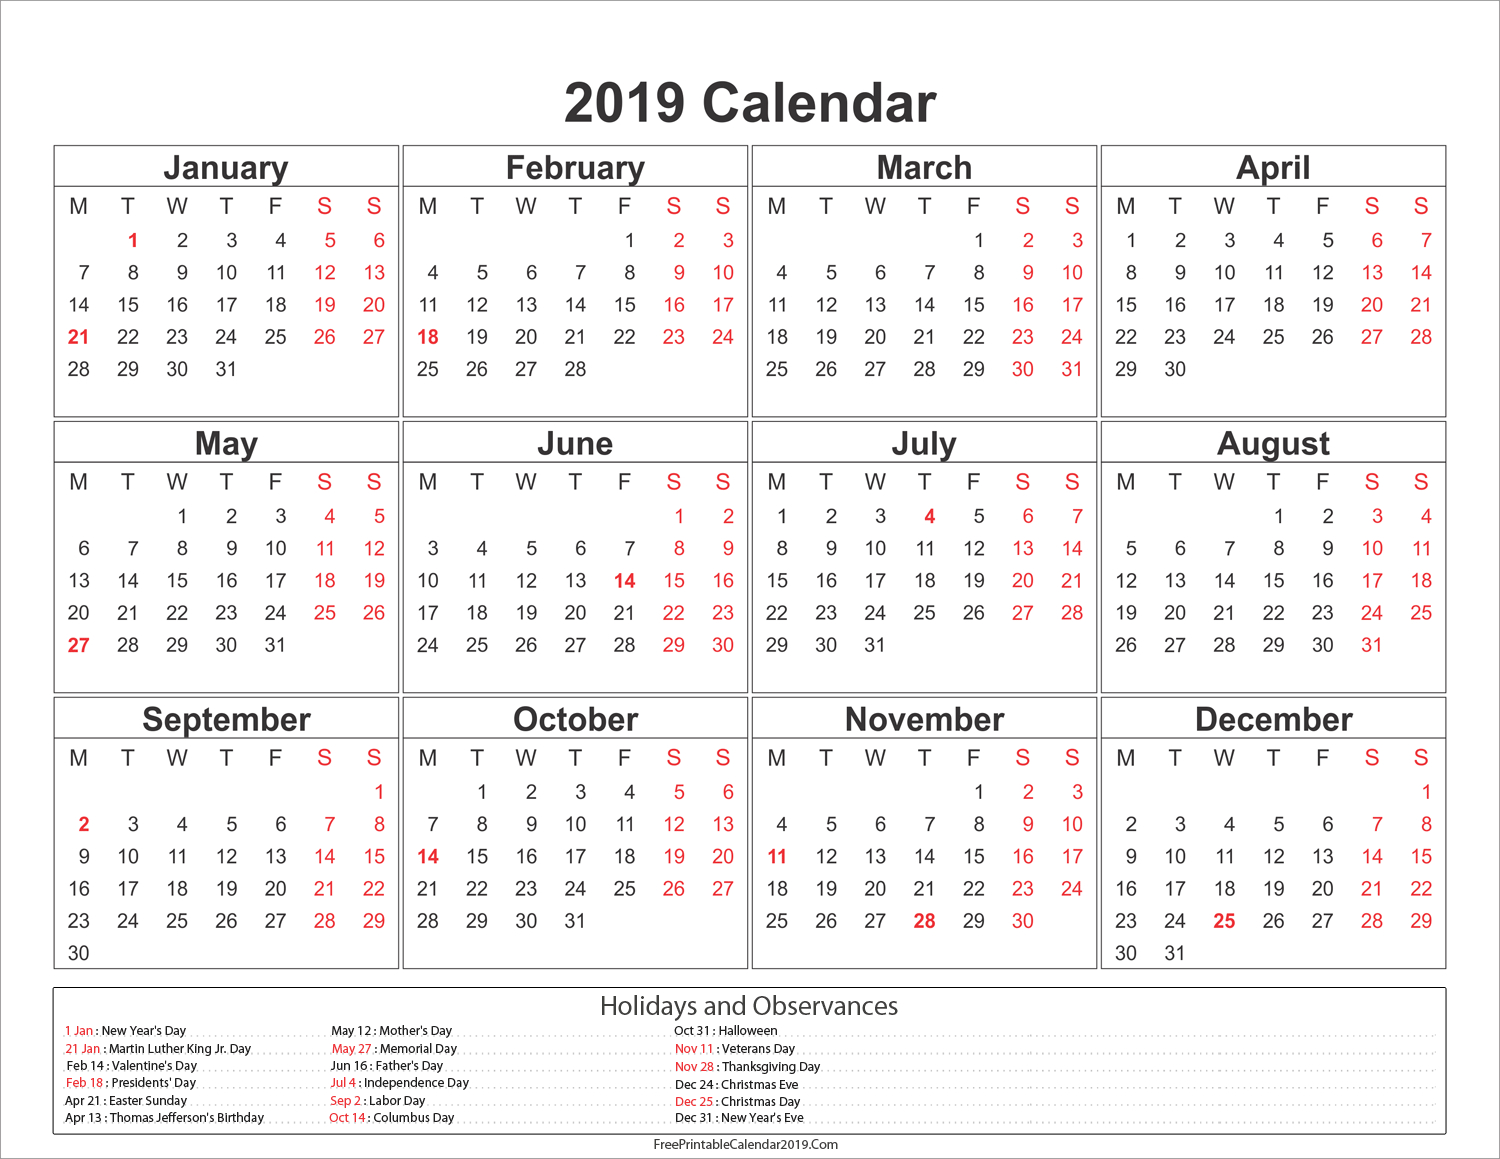 2019 Calendar With Holidays - Us, Uk, Australia, Canada - Calendar Calendar 2019 Federal Holidays